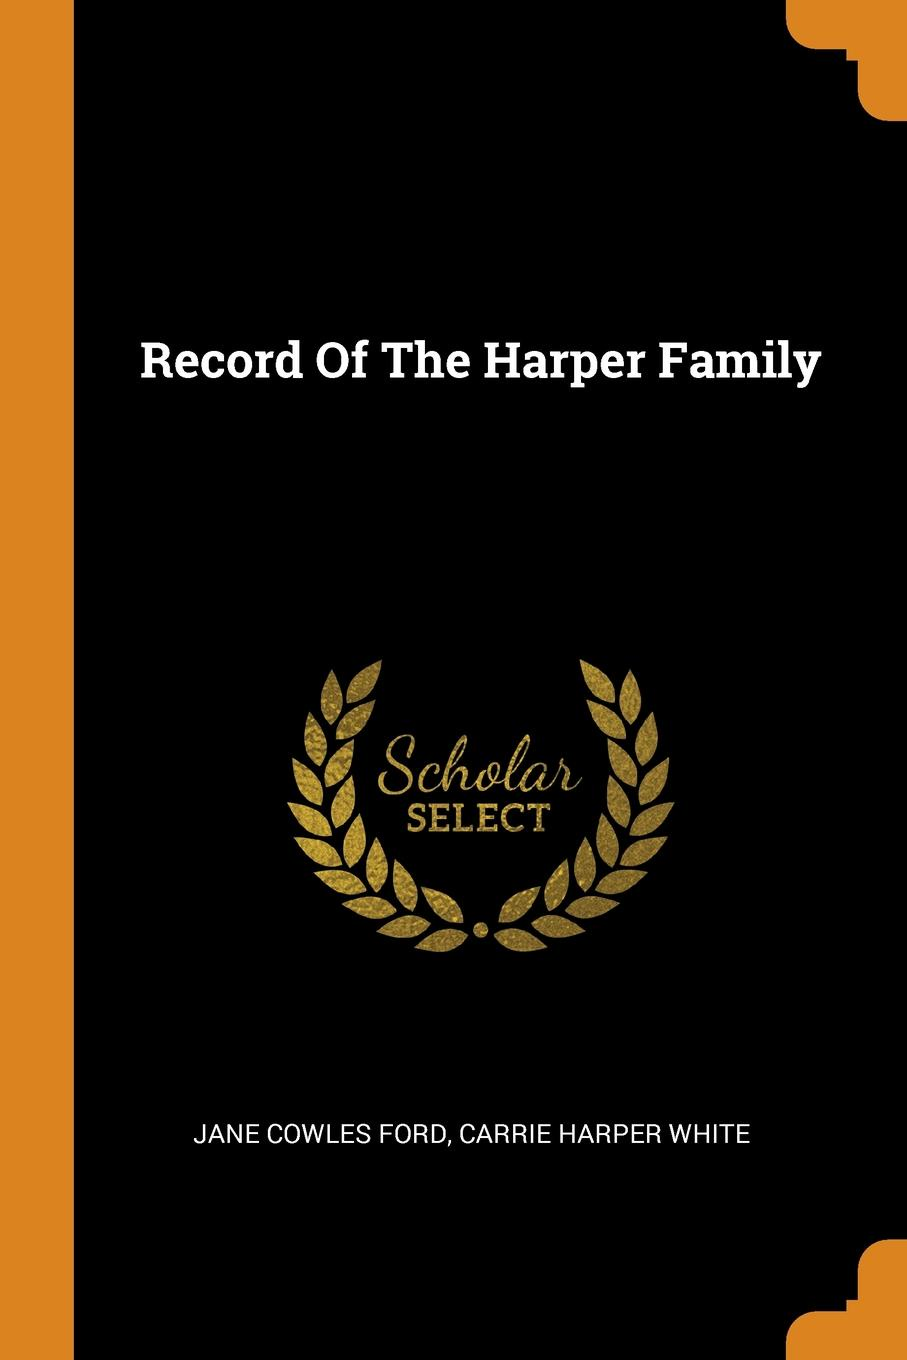 Jane Cowles Ford, Carrie Harper White Record Of The Harper Family